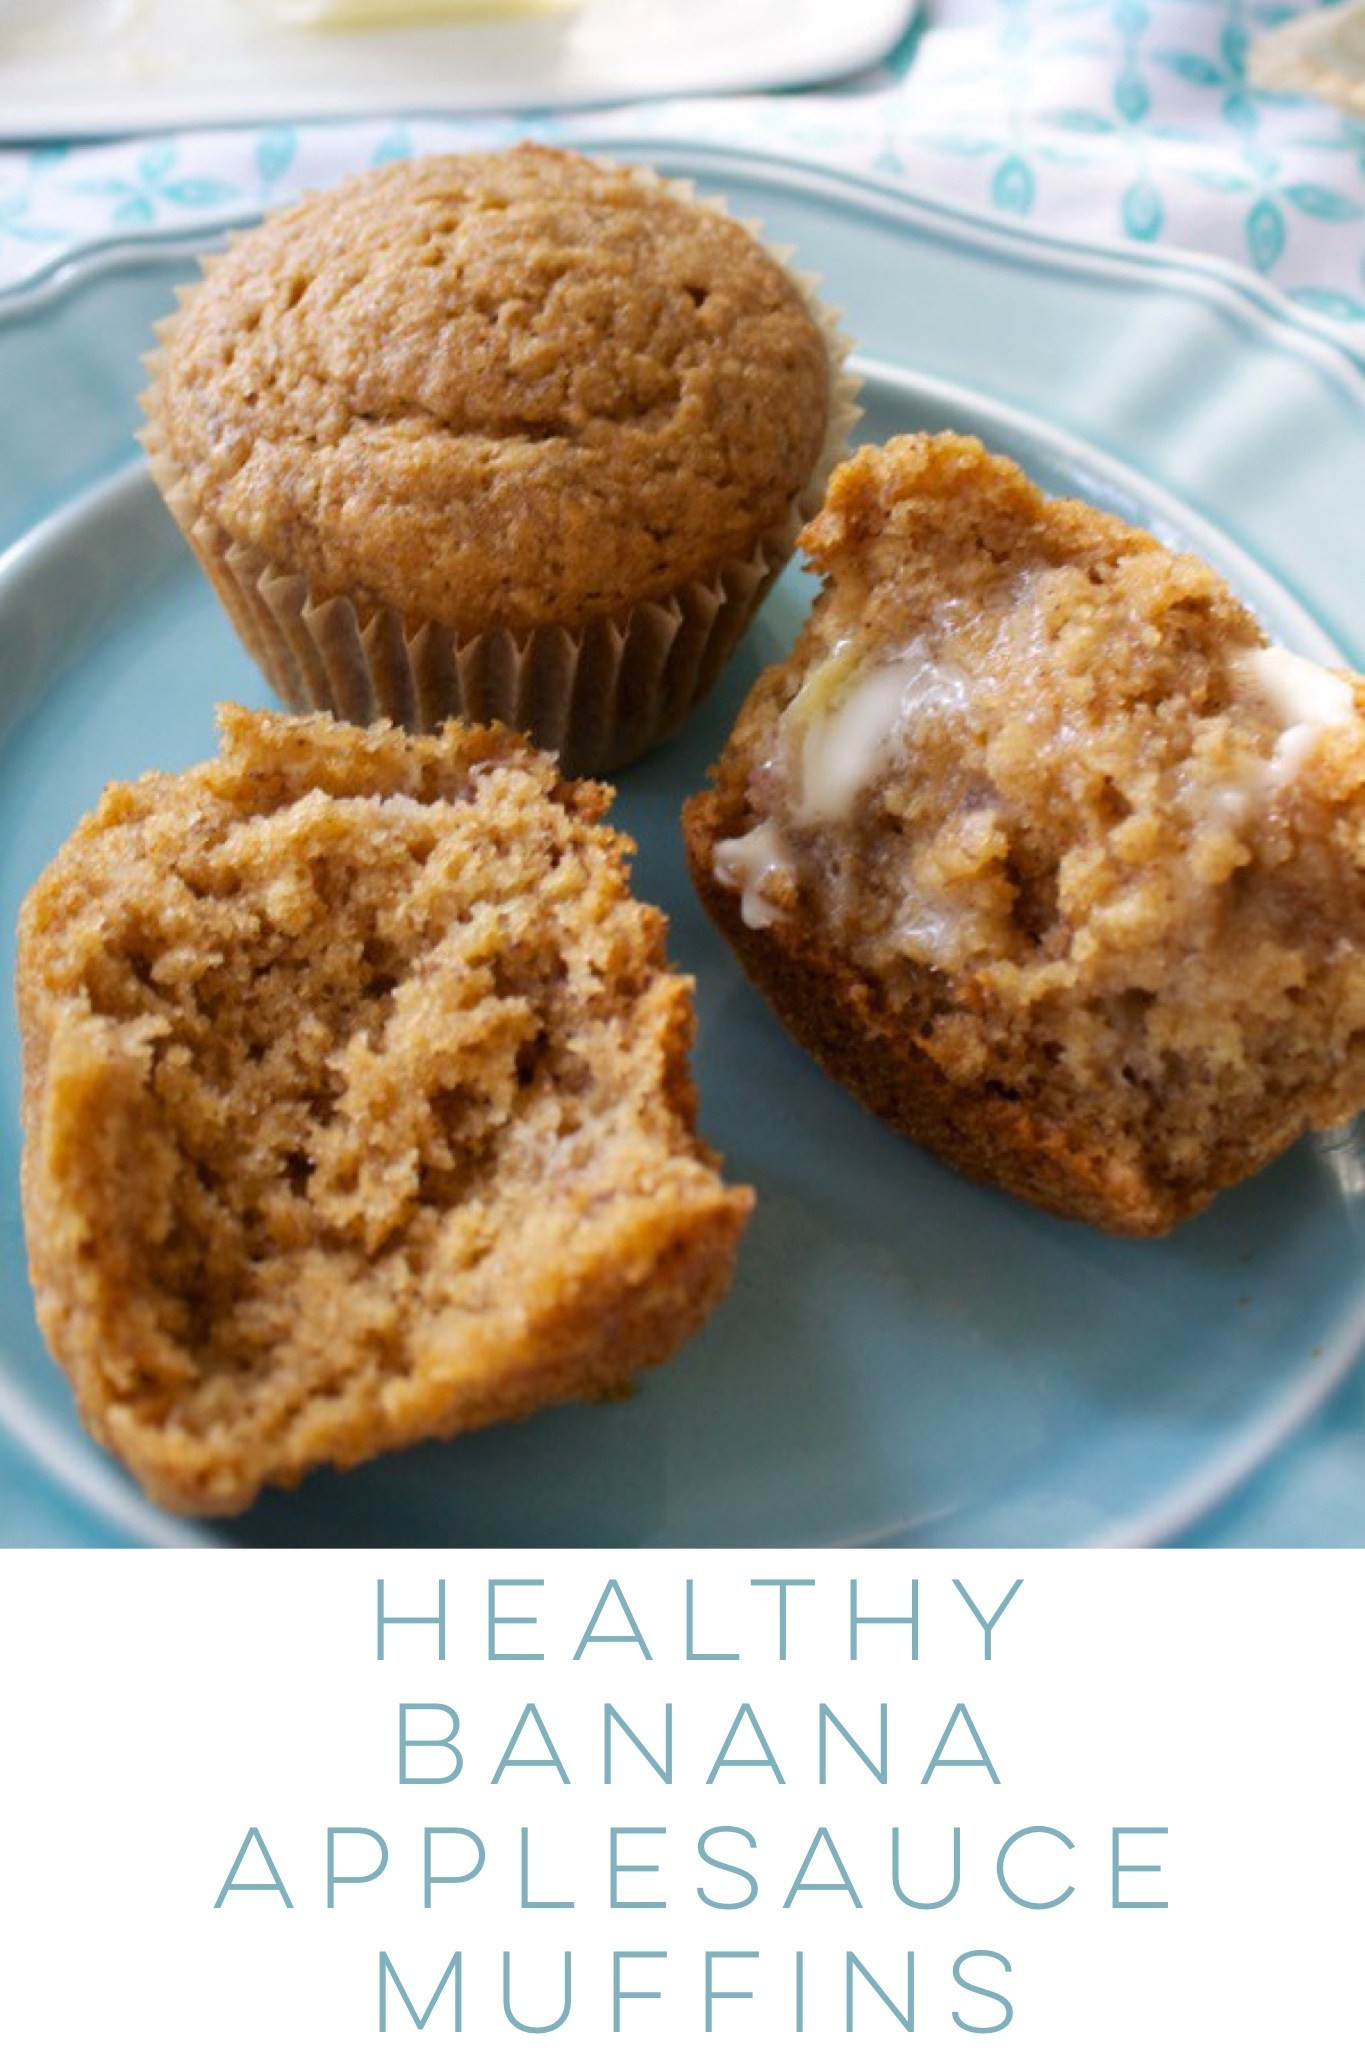 Banana Muffins With Applesauce  Healthy Banana Applesauce Muffins Bet Dinner